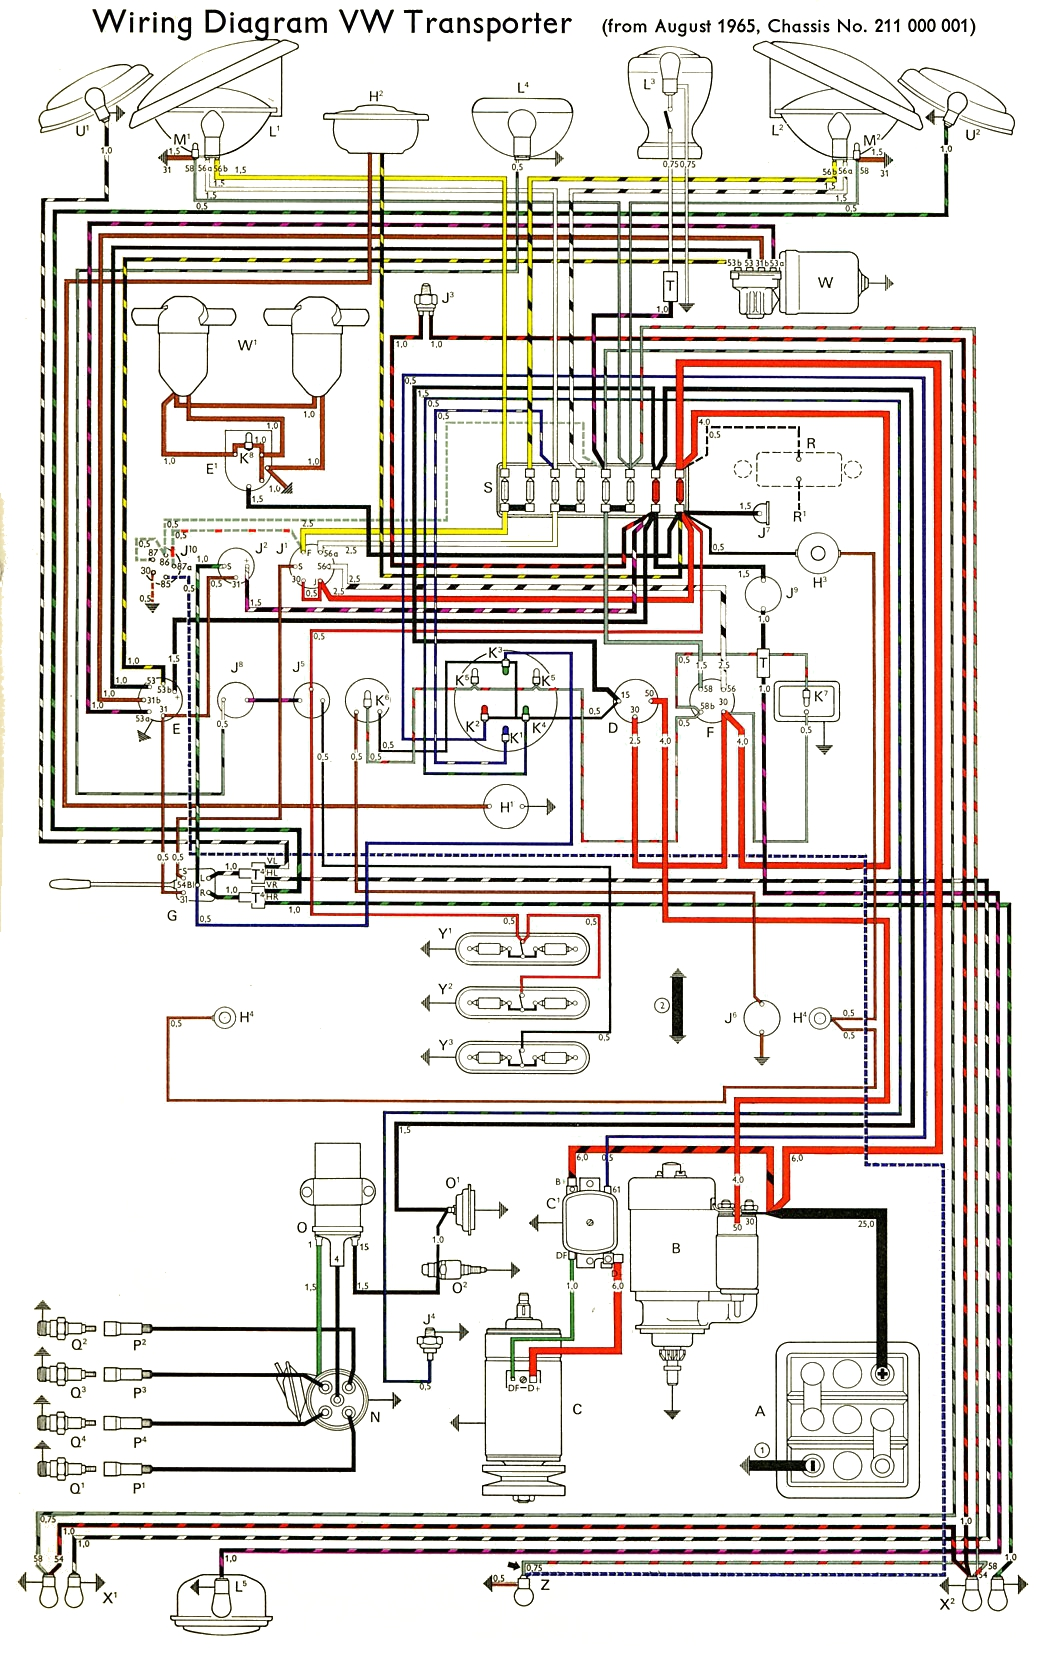 hight resolution of thomas wiring diagrams simple wiring diagram baldor motor wiring diagram thomas bus wiring schematics wiring diagram